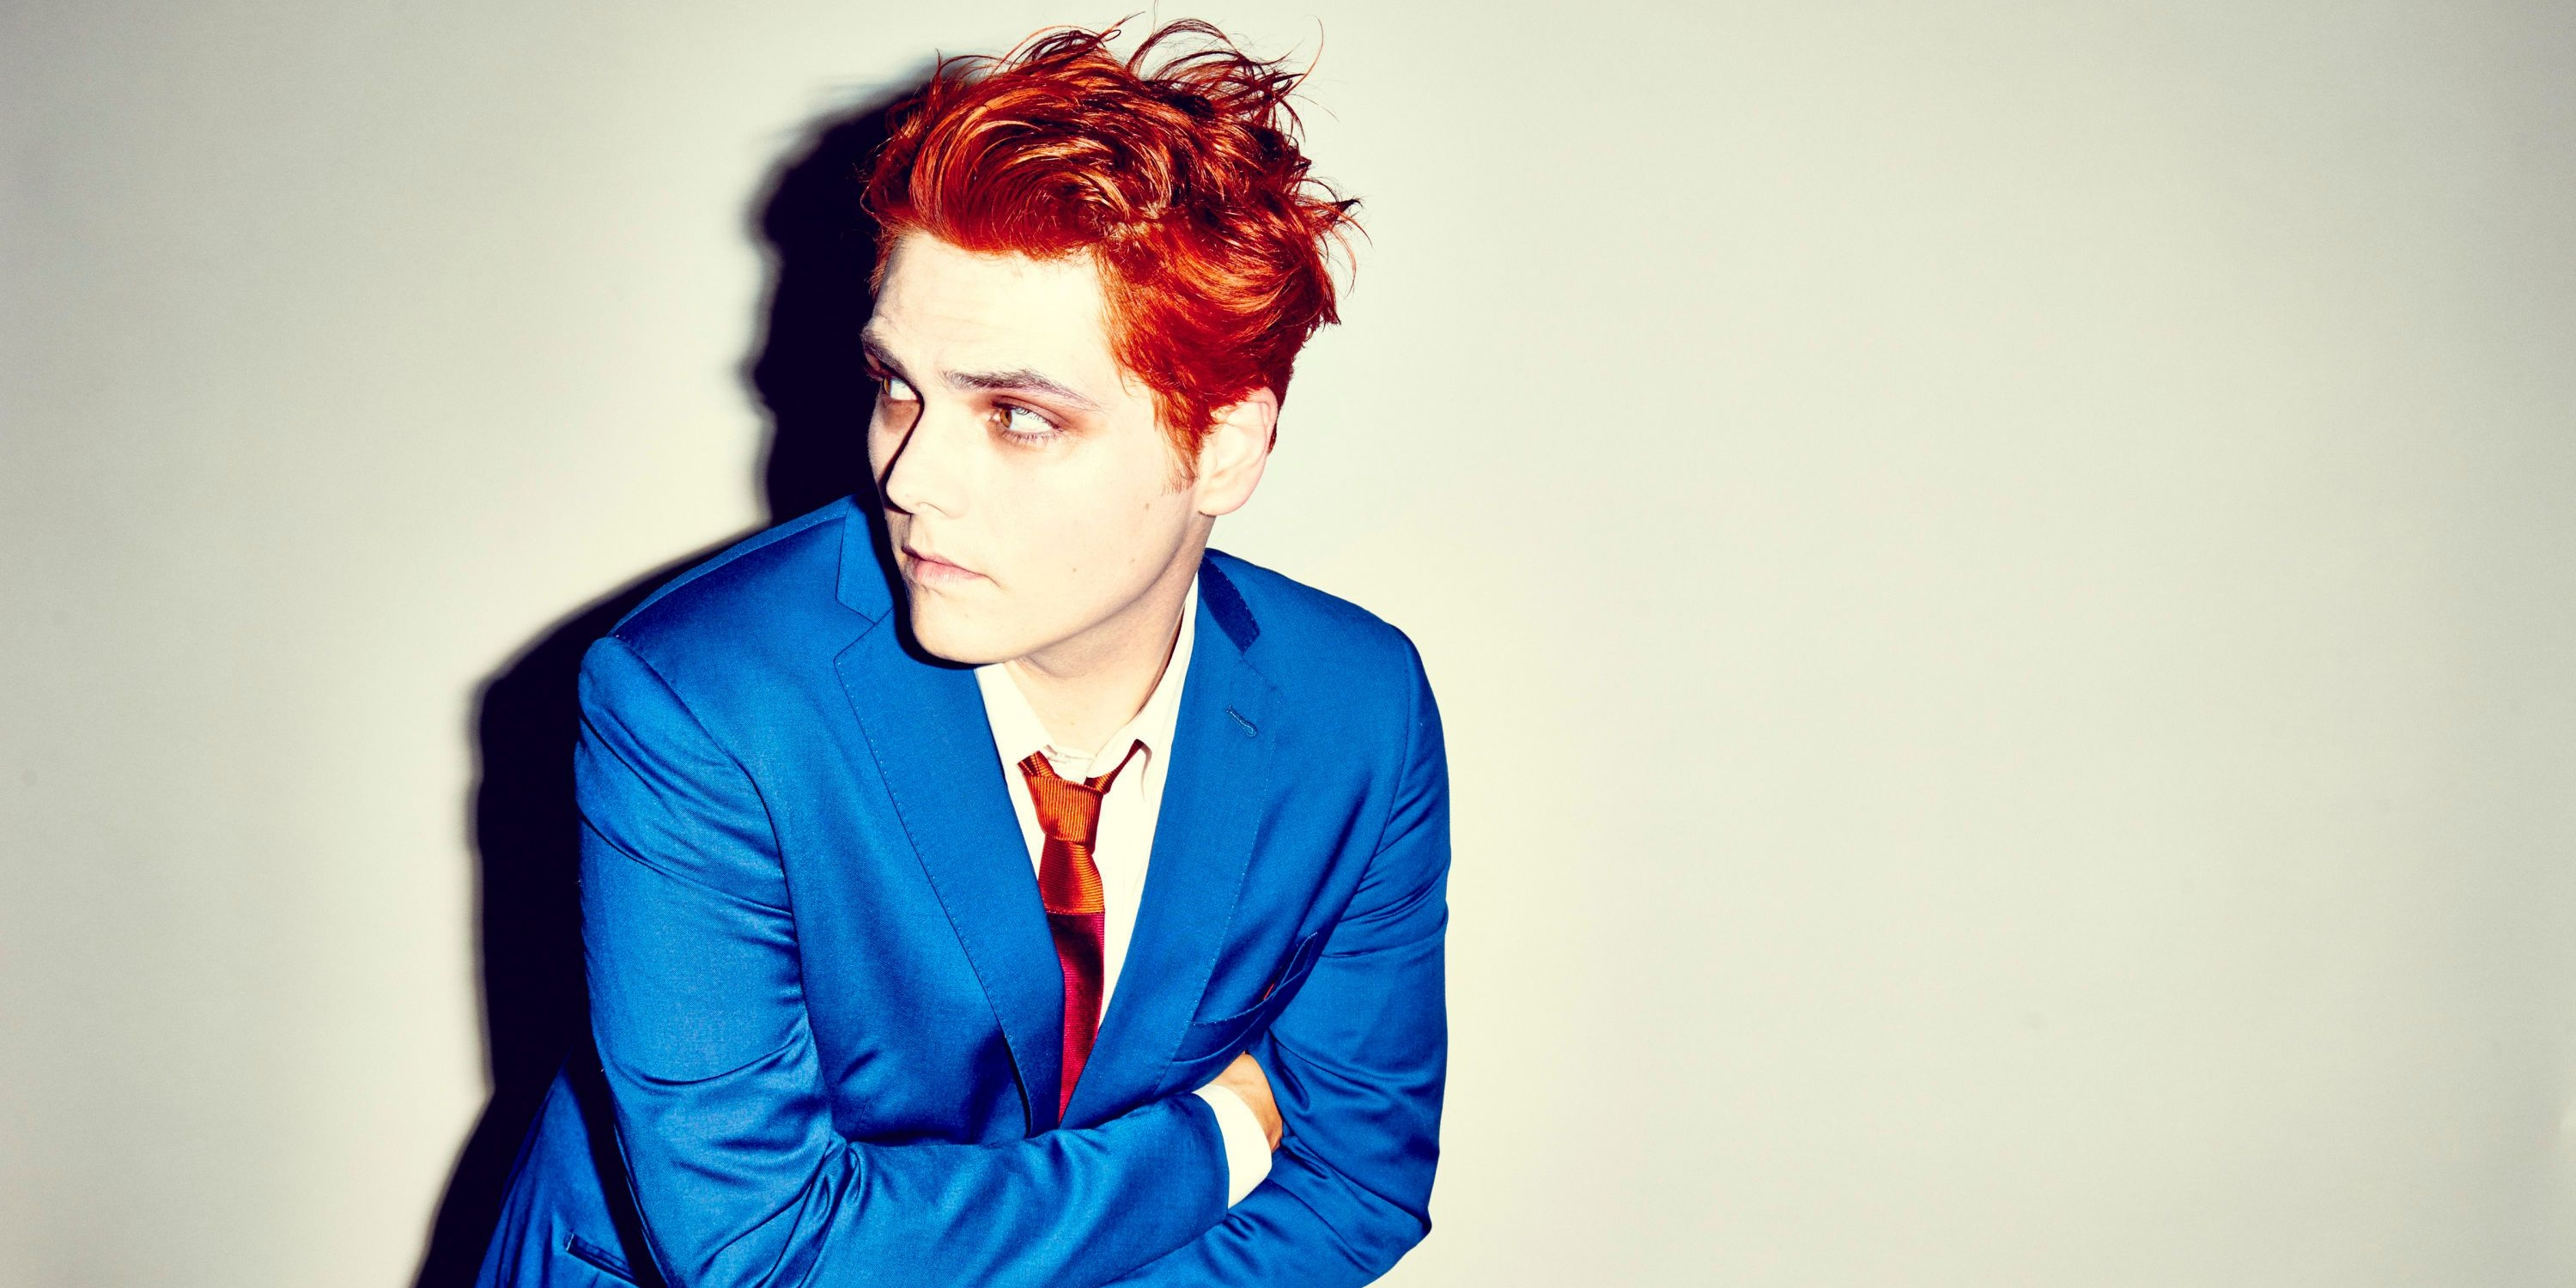 Gerard Way's Netflix series The Umbrella Academy has inspired new music